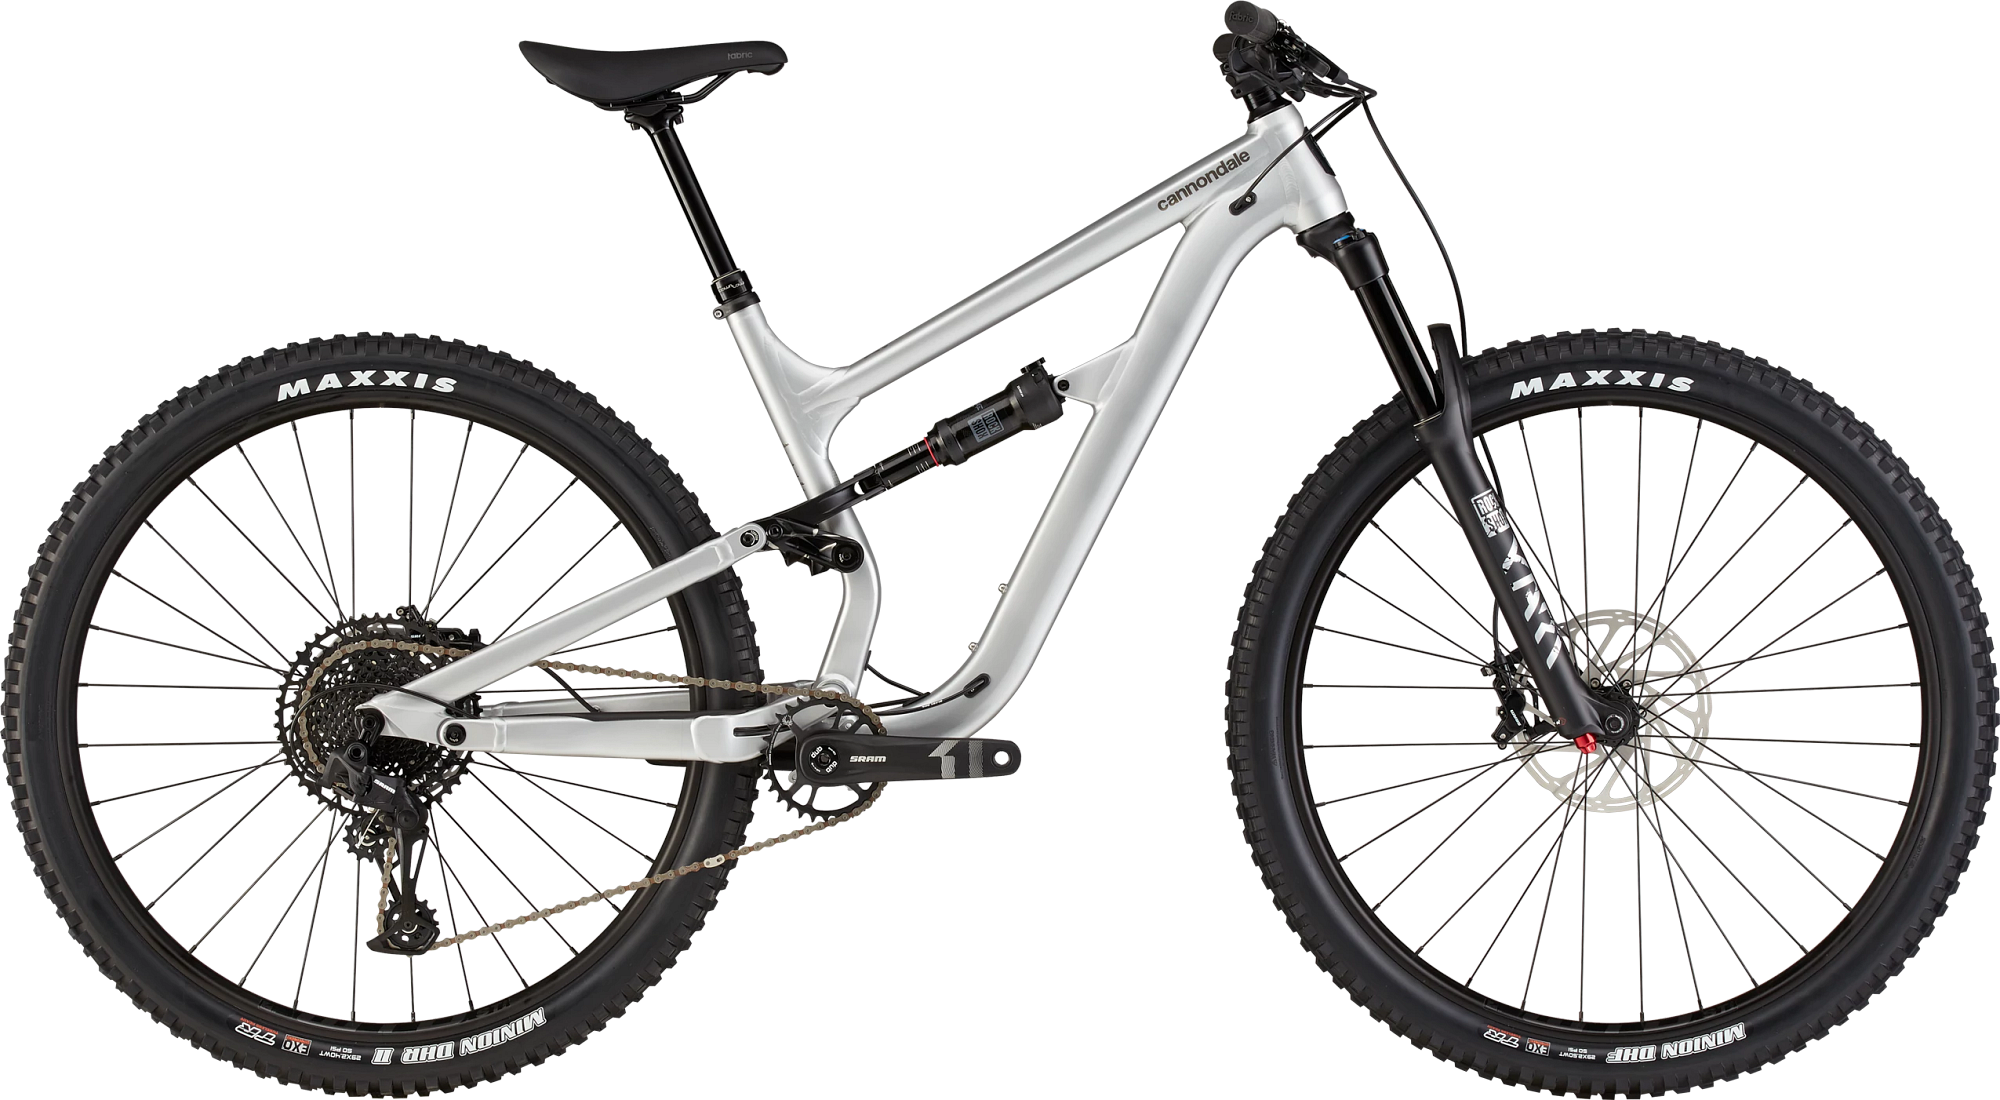 cannondale waves - 12-speed mountain bike